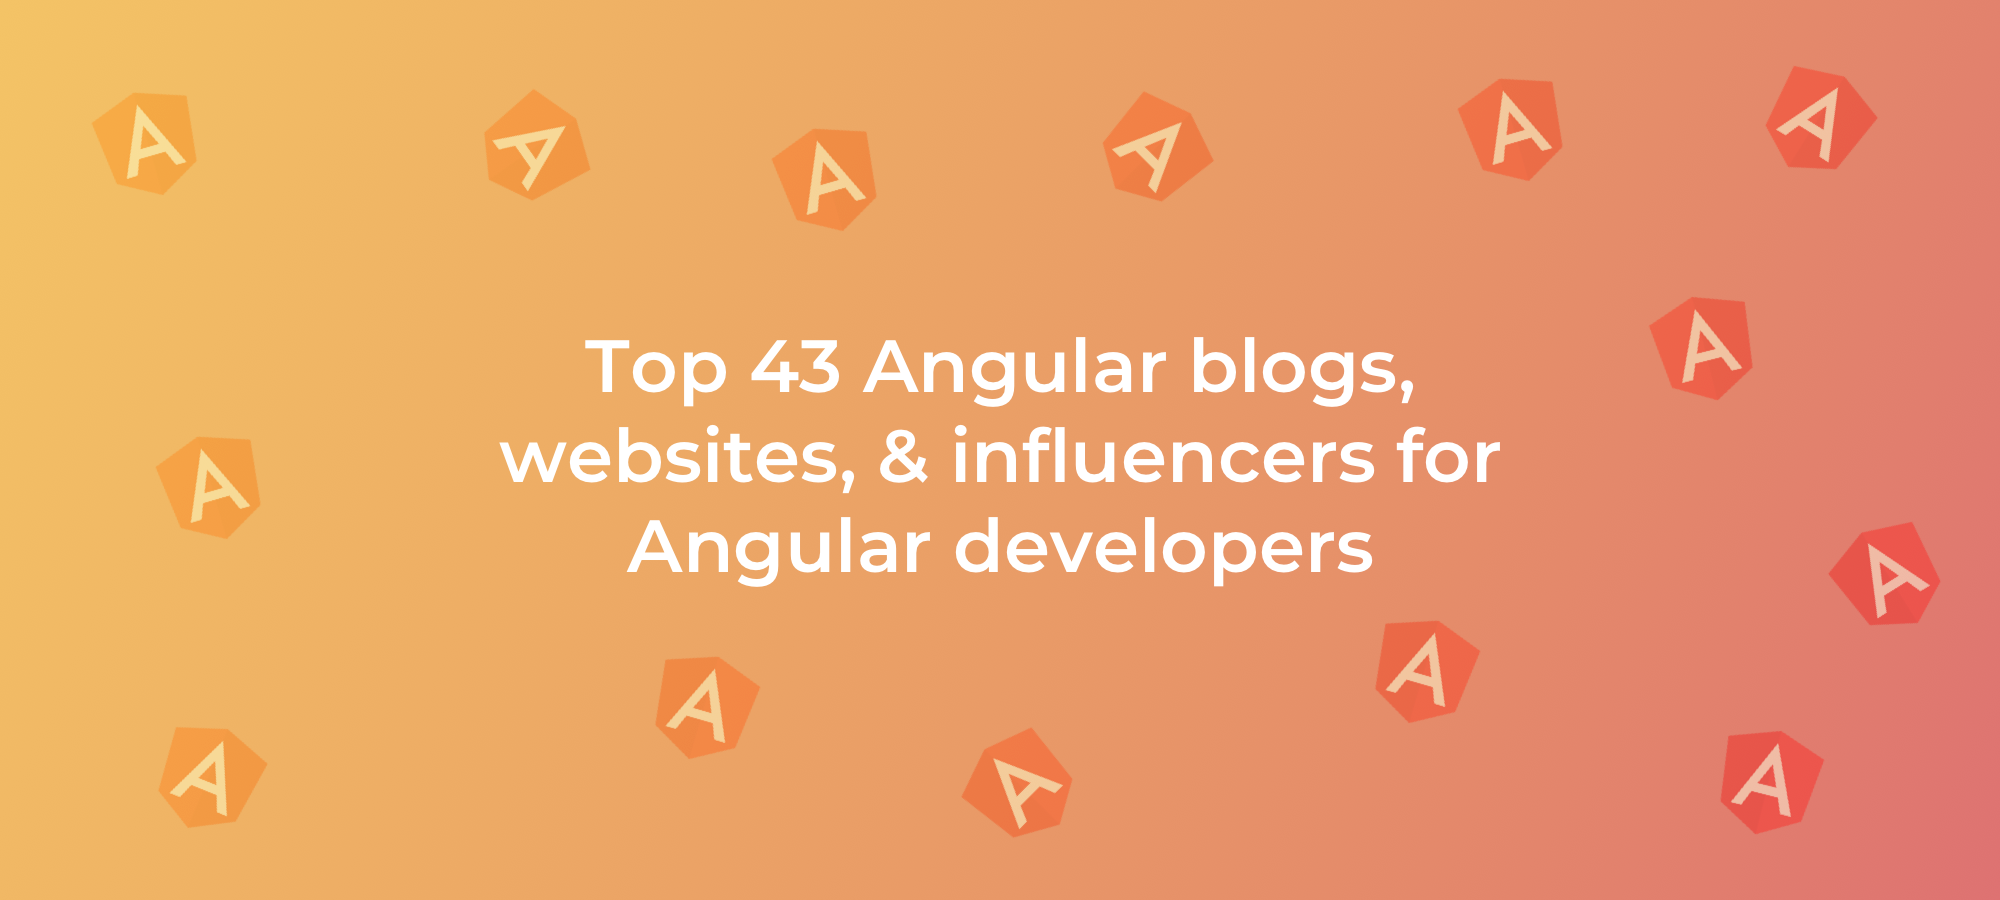 Top 43 Angular Blogs, Websites, & Influencers for Angular Developers